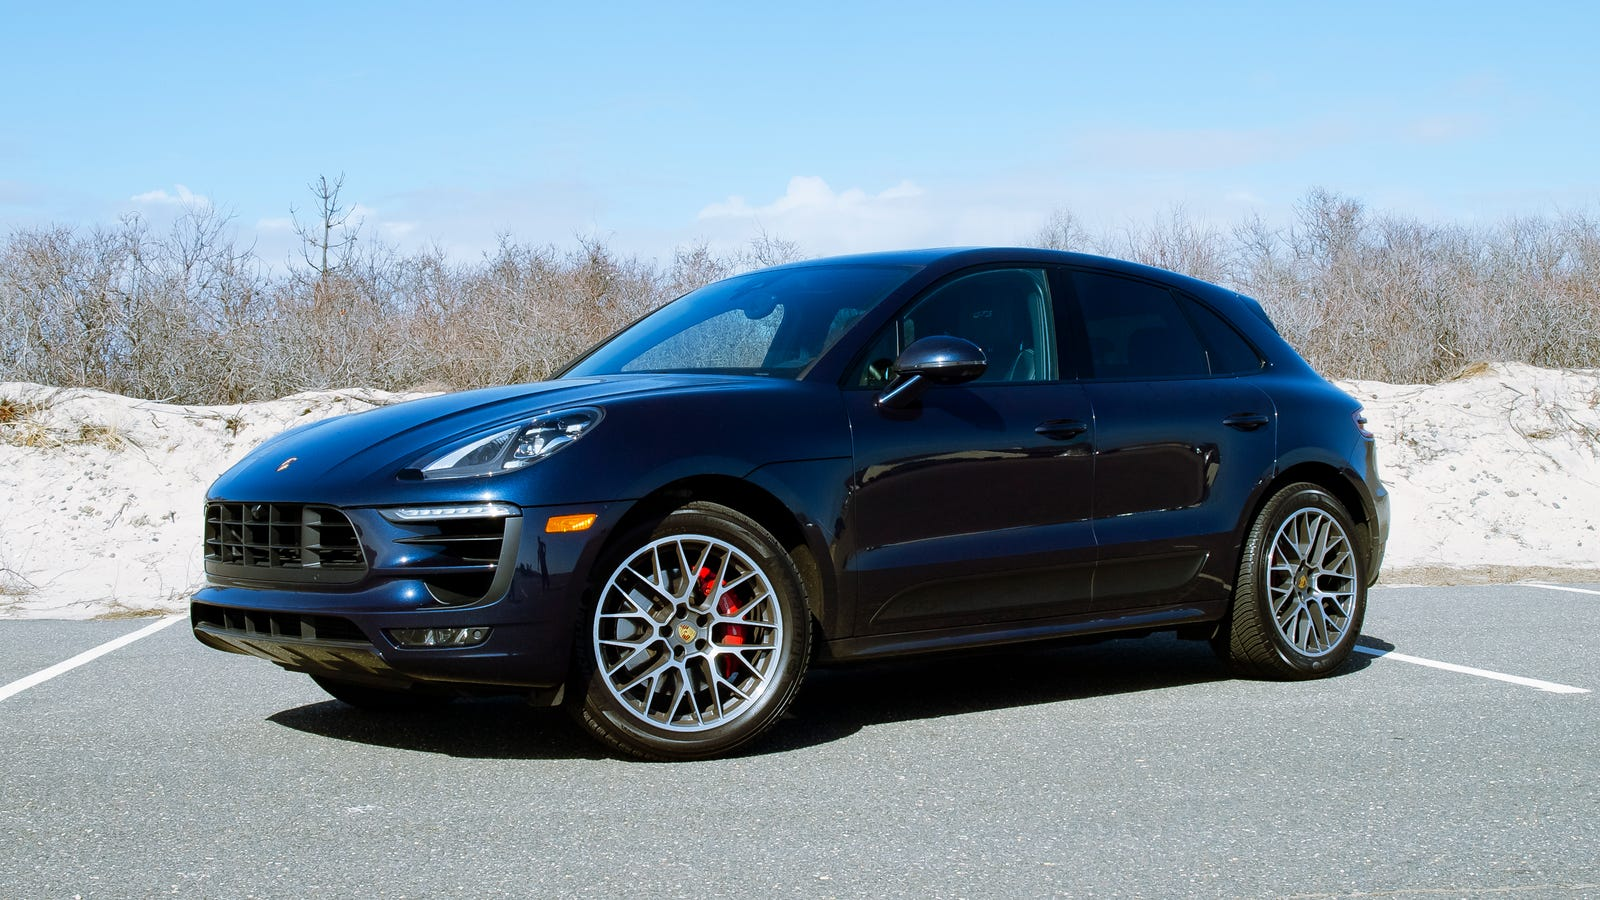 Progressive Near Me >> The Porsche Macan GTS Is The Ultimate City Survival Vehicle